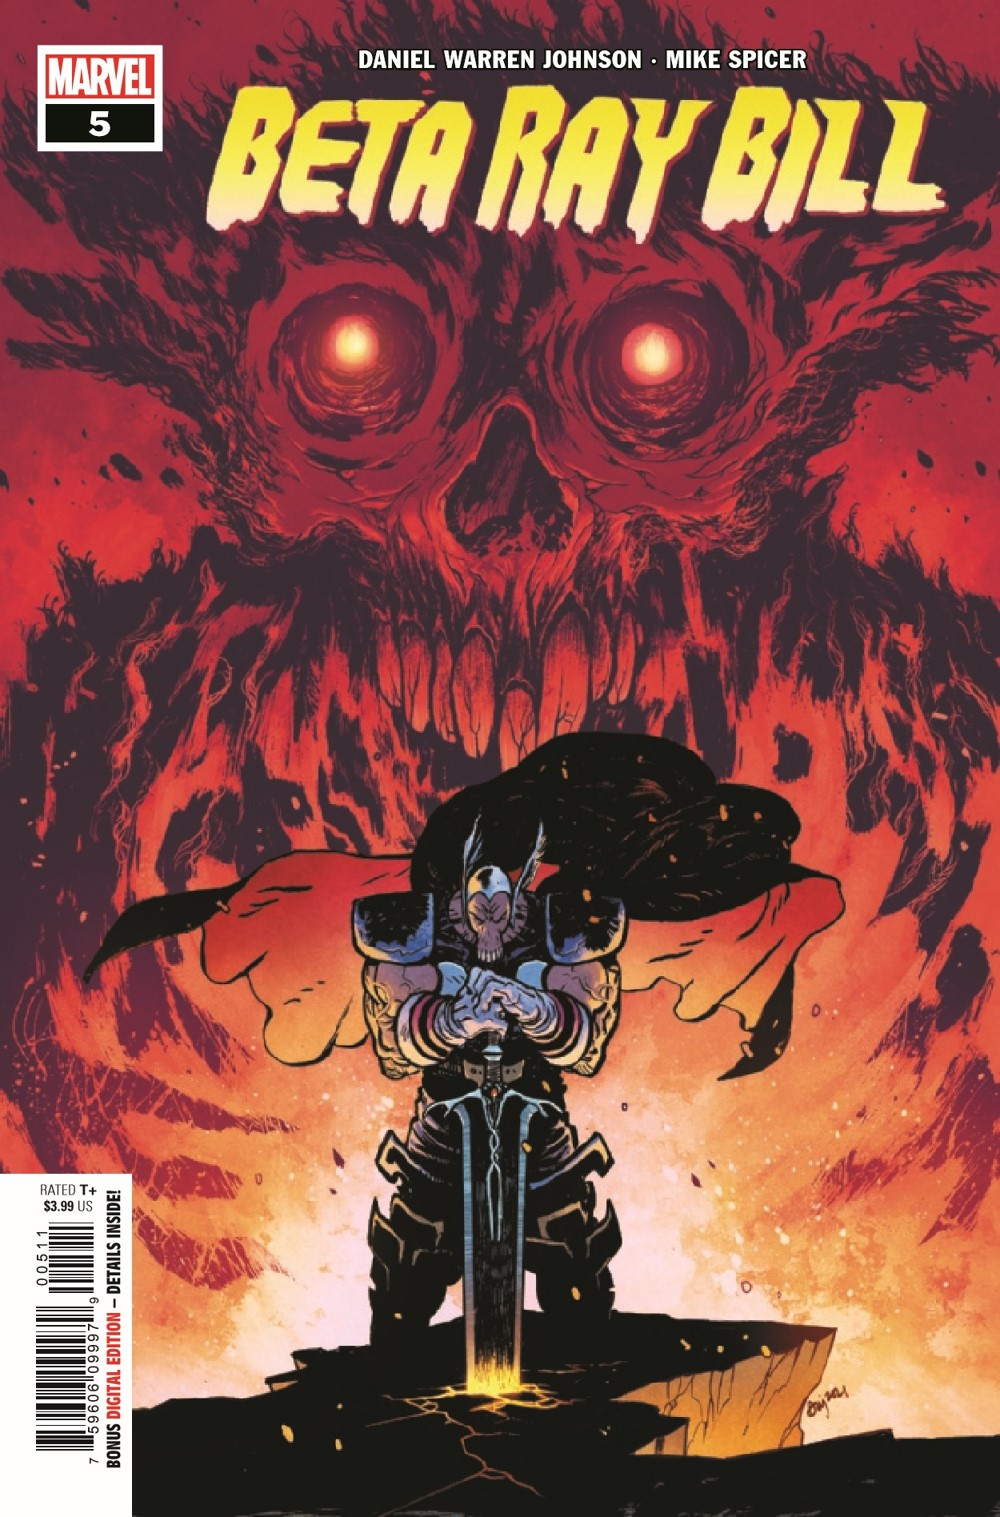 BRBILL2021005_Preview-1 ComicList Previews: BETA RAY BILL #5 (OF 5)